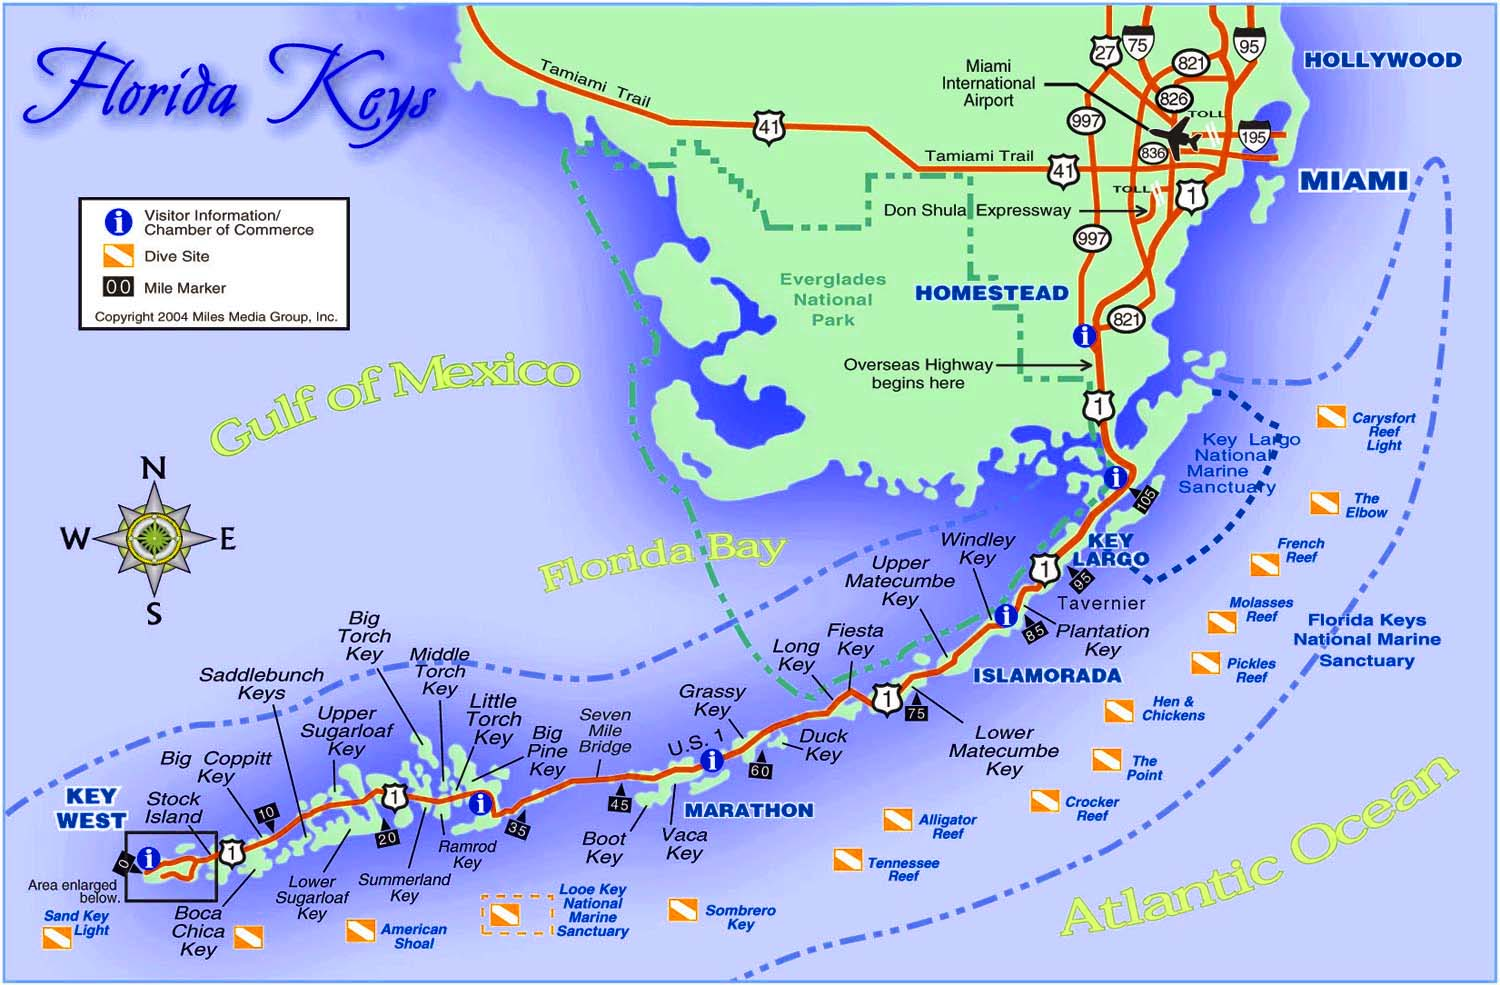 Key west florida spring break packages